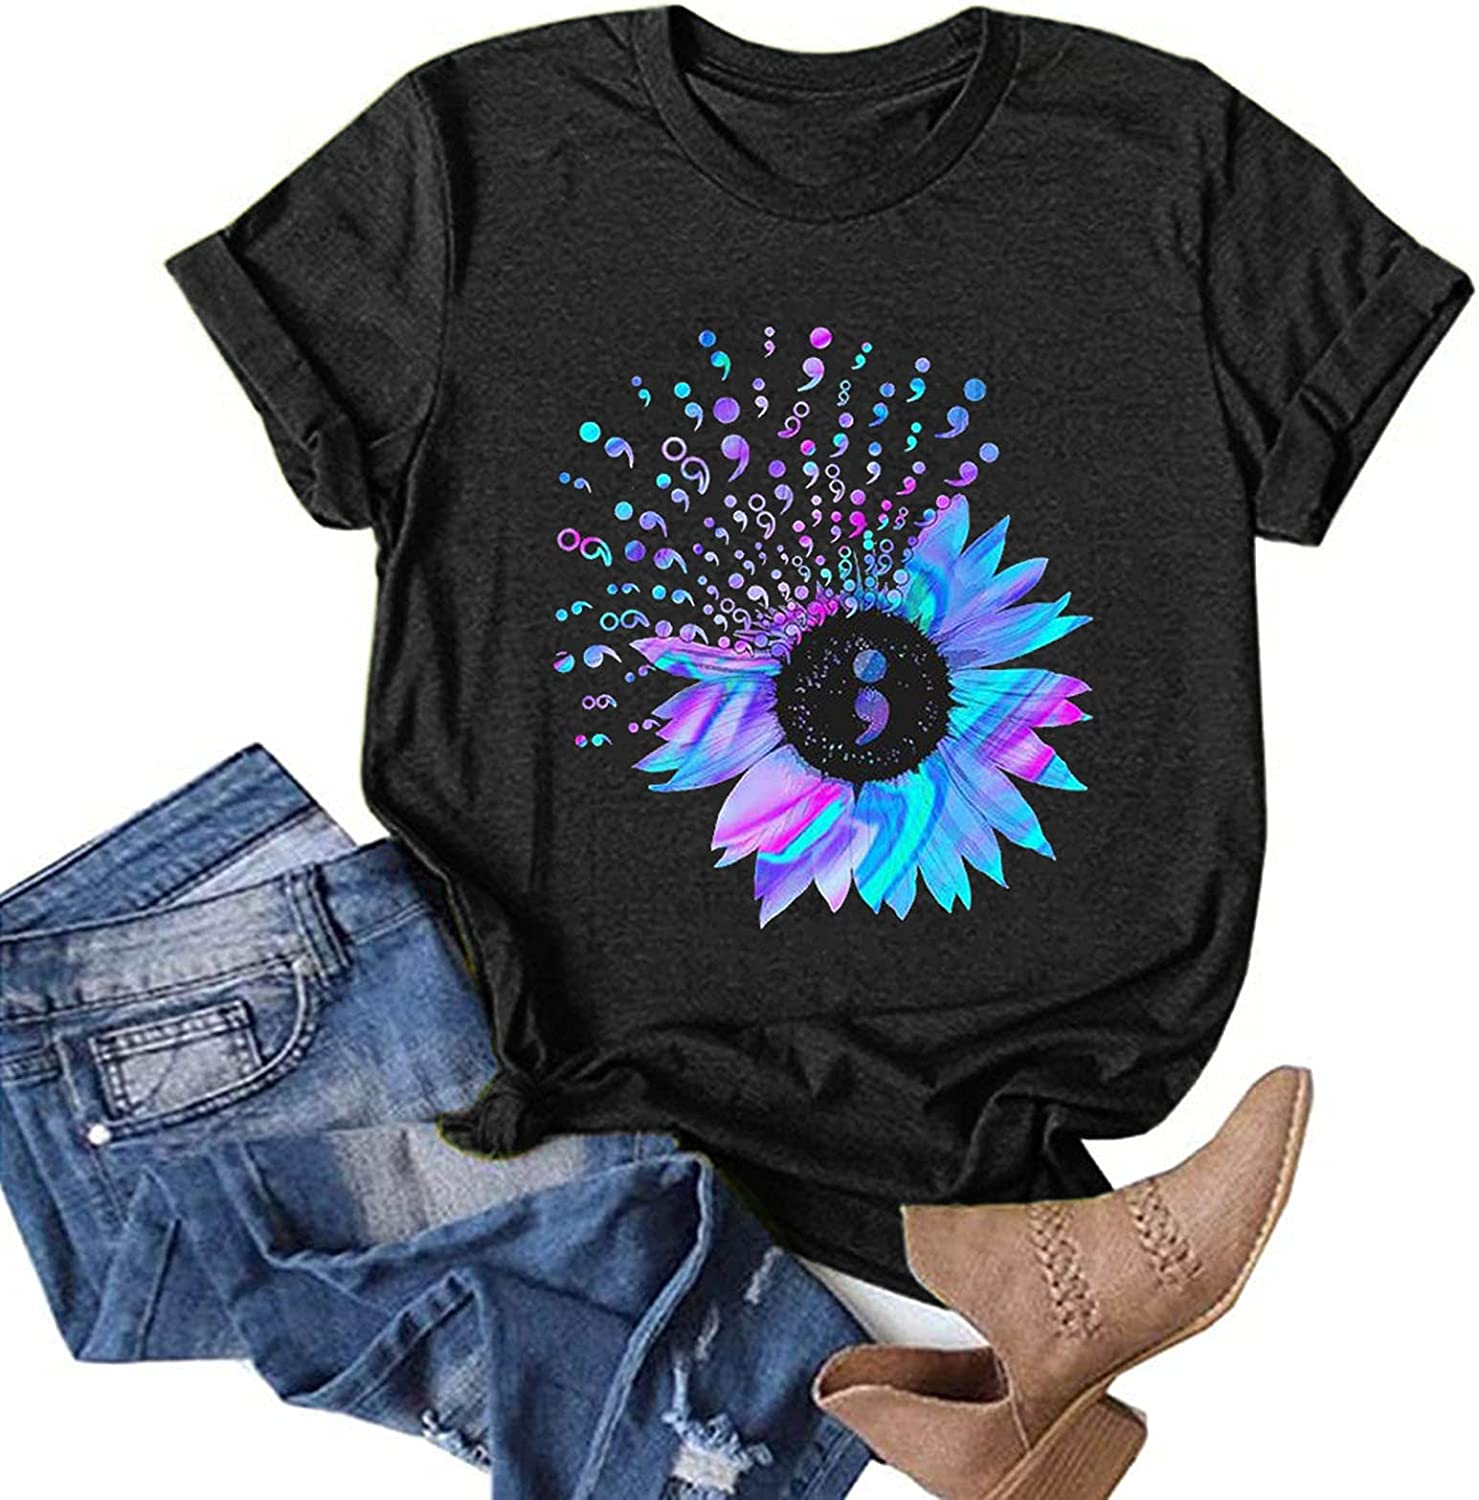 Eduavar Tops for Women Summer,Womens Fashion Gardient Printed Short Sleeve V Neck T Shirt Casual Loose Tee Tunic Blouses